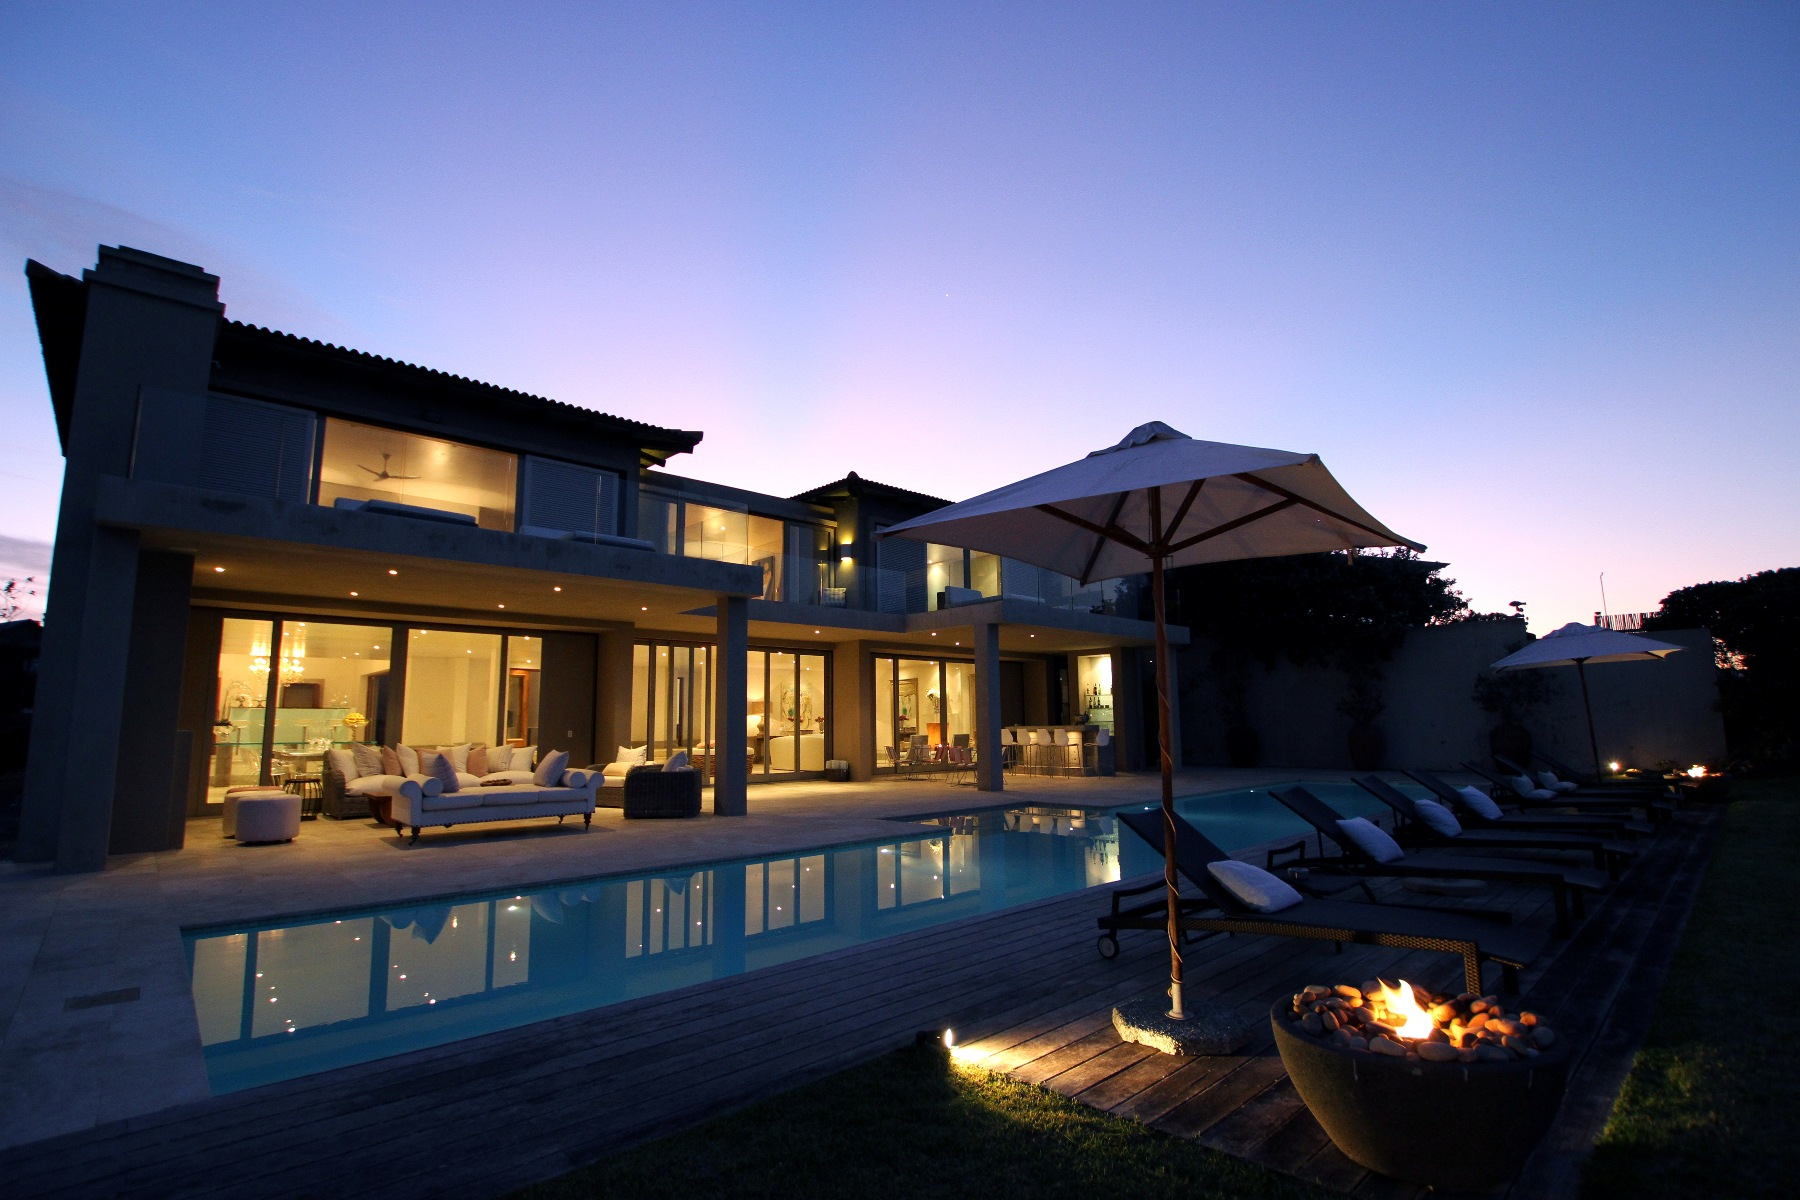 Single Family Home for Sale at Beluga Plettenberg Bay Plettenberg Bay, Western Cape 6600 South Africa